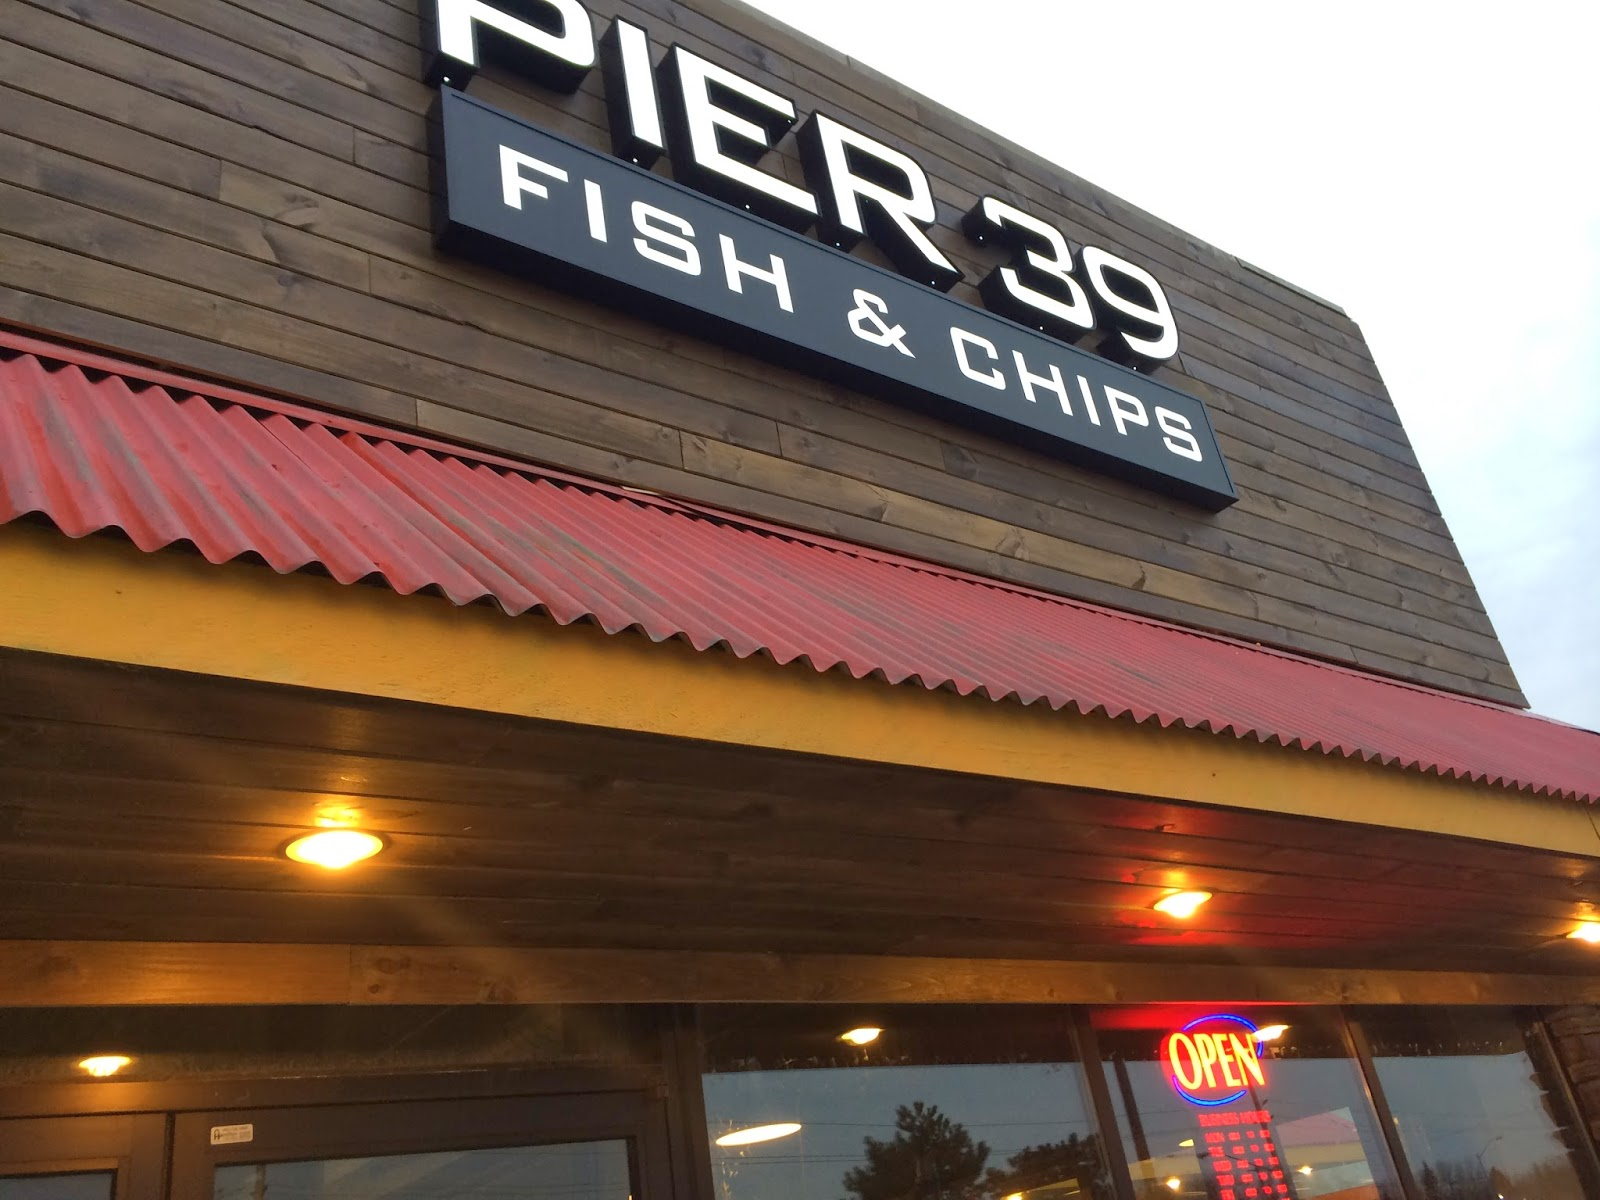 Pier 39 Fish And Chips